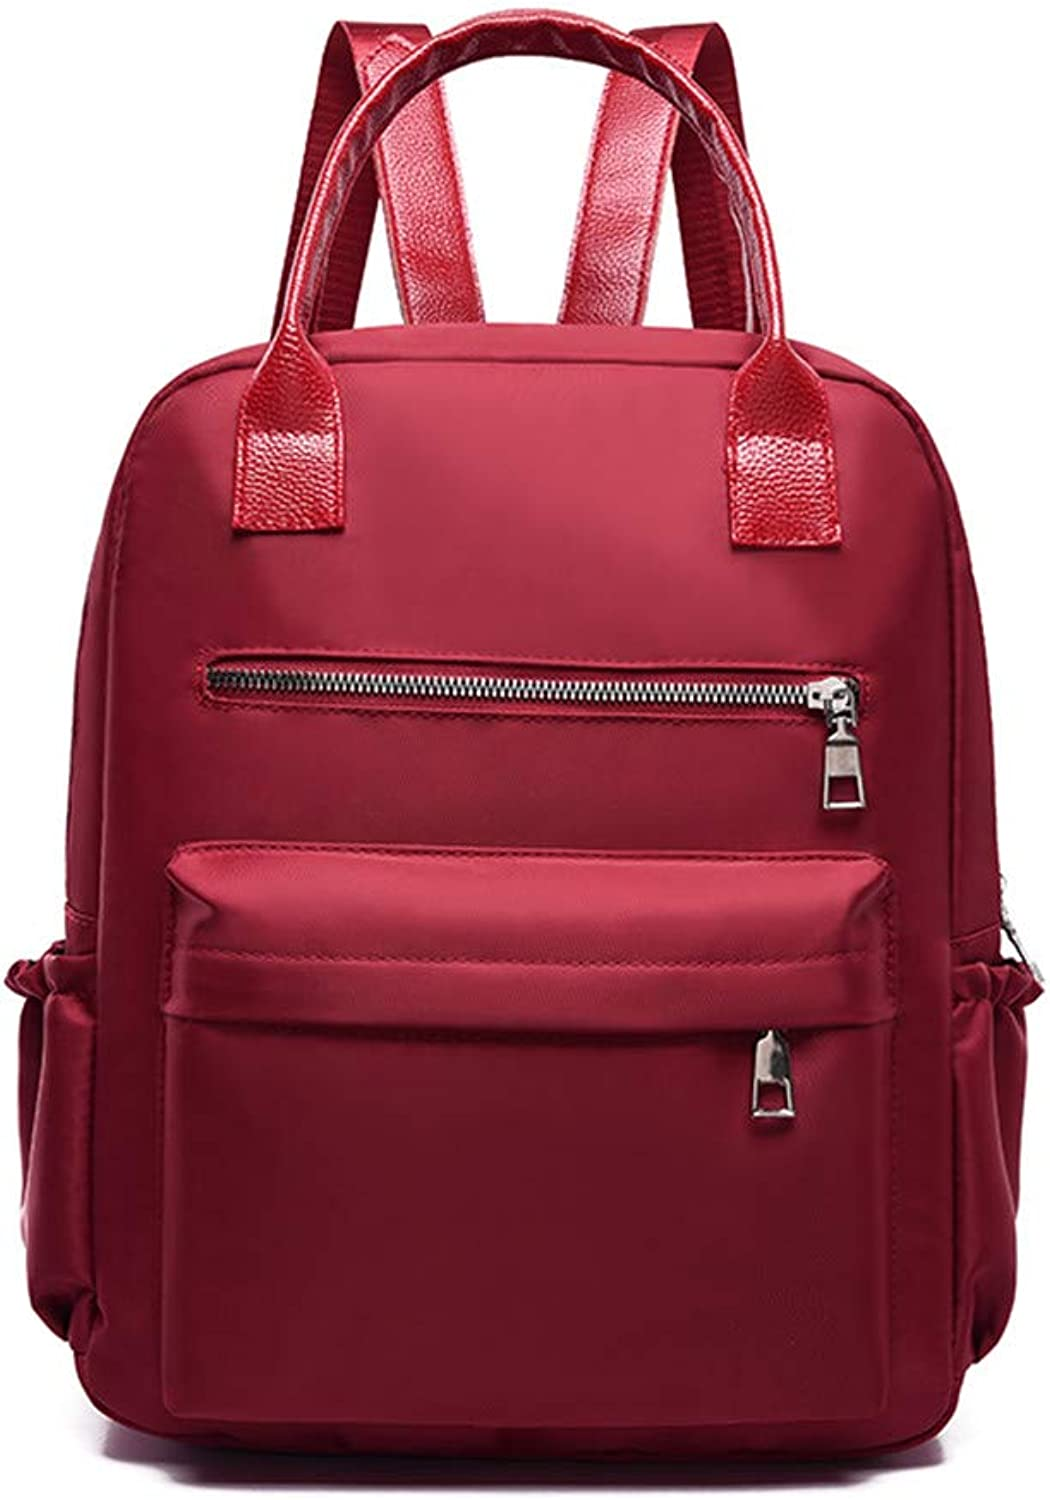 Oxford Dualuse Backpack Nylon Bag Travel Backpack, red Casual Practical Simple